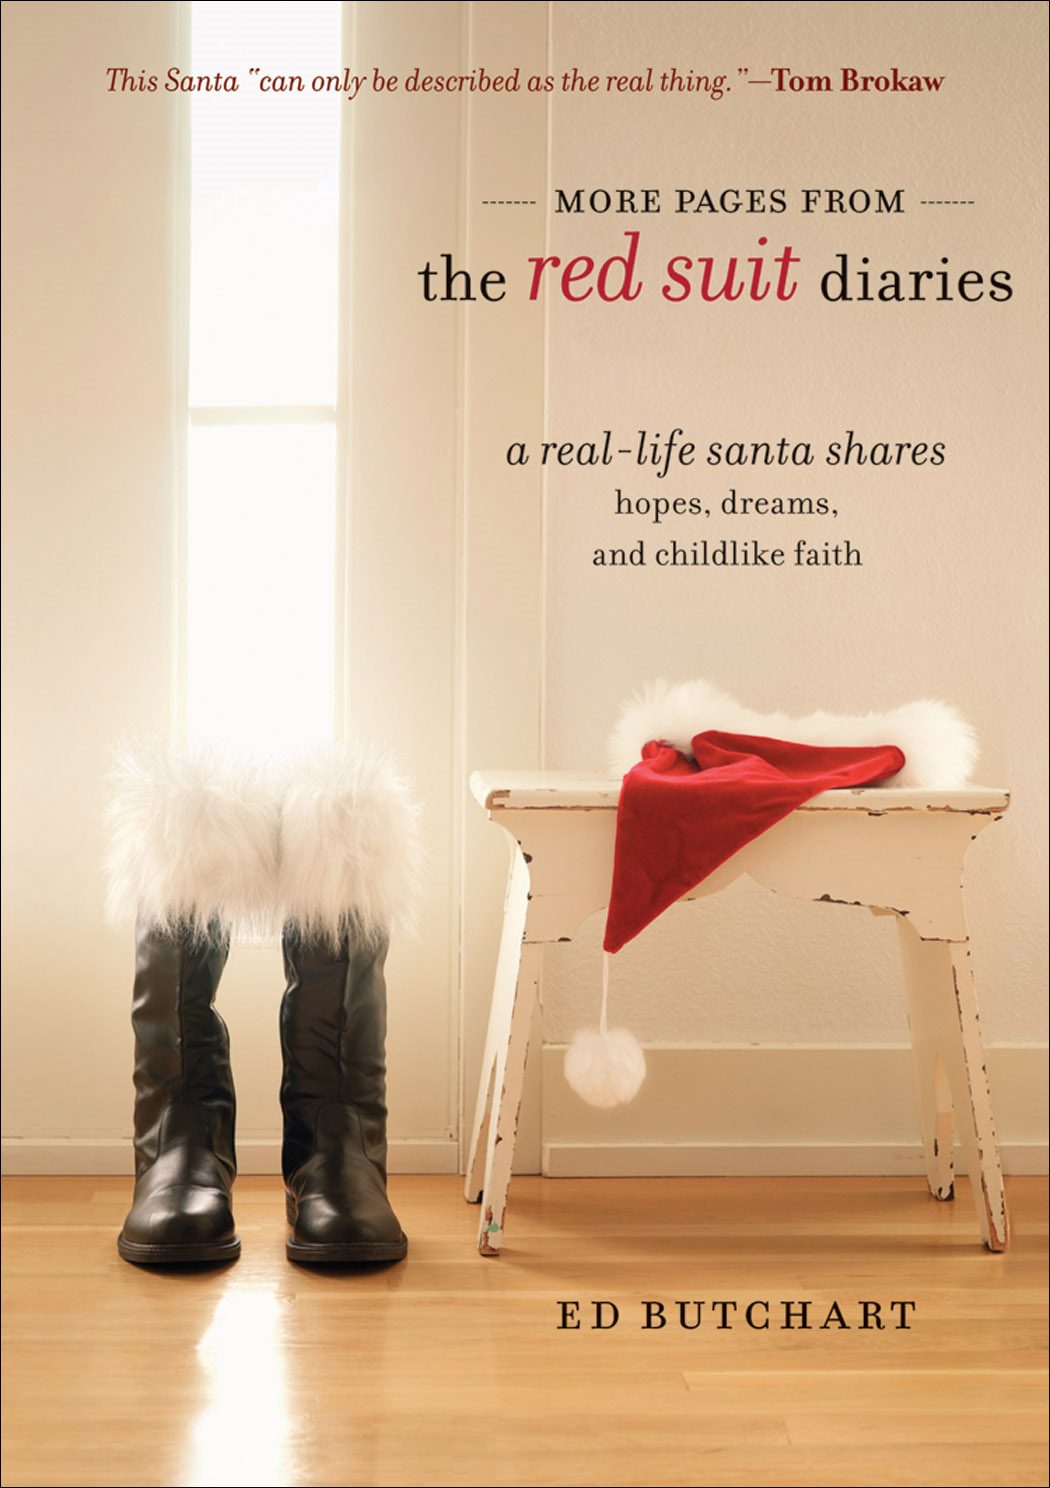 More Pages from the Red Suit Diaries